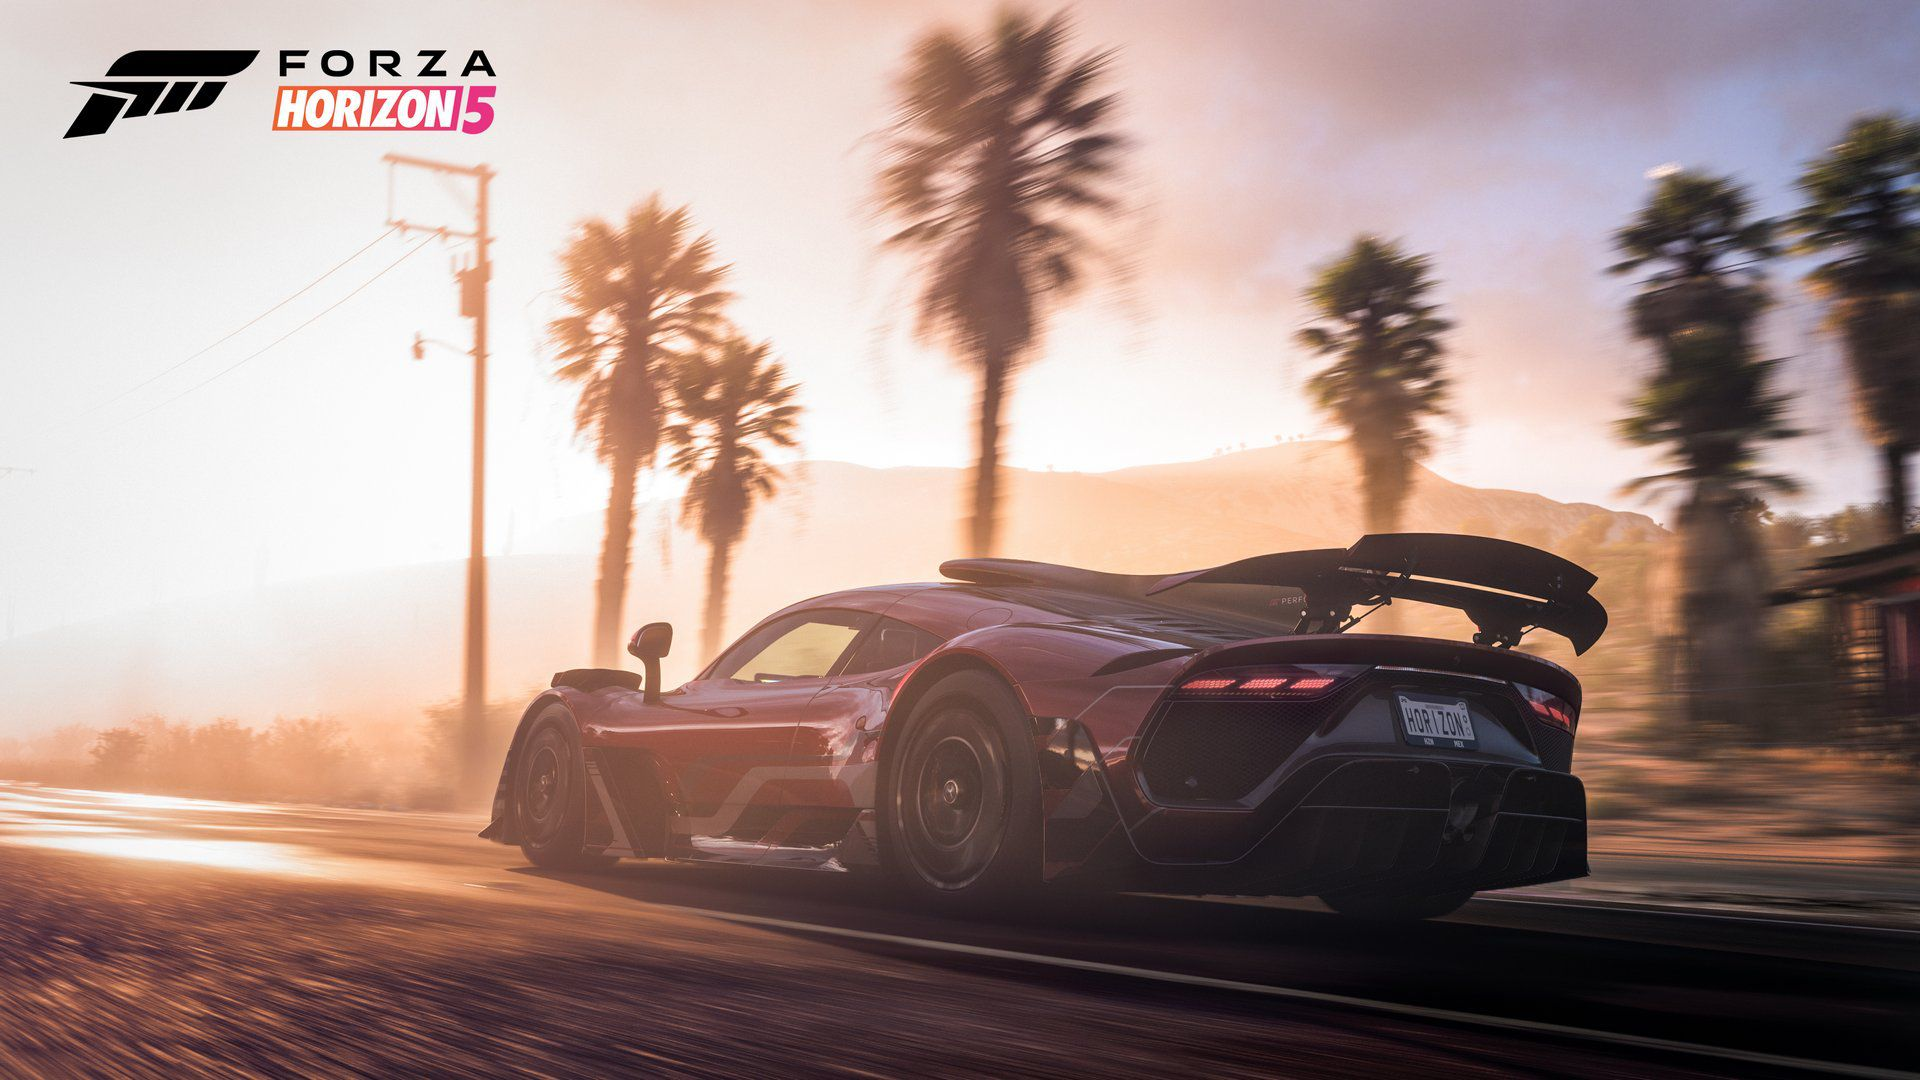 Forza Horizon 5: news about the campaign will arrive tomorrow